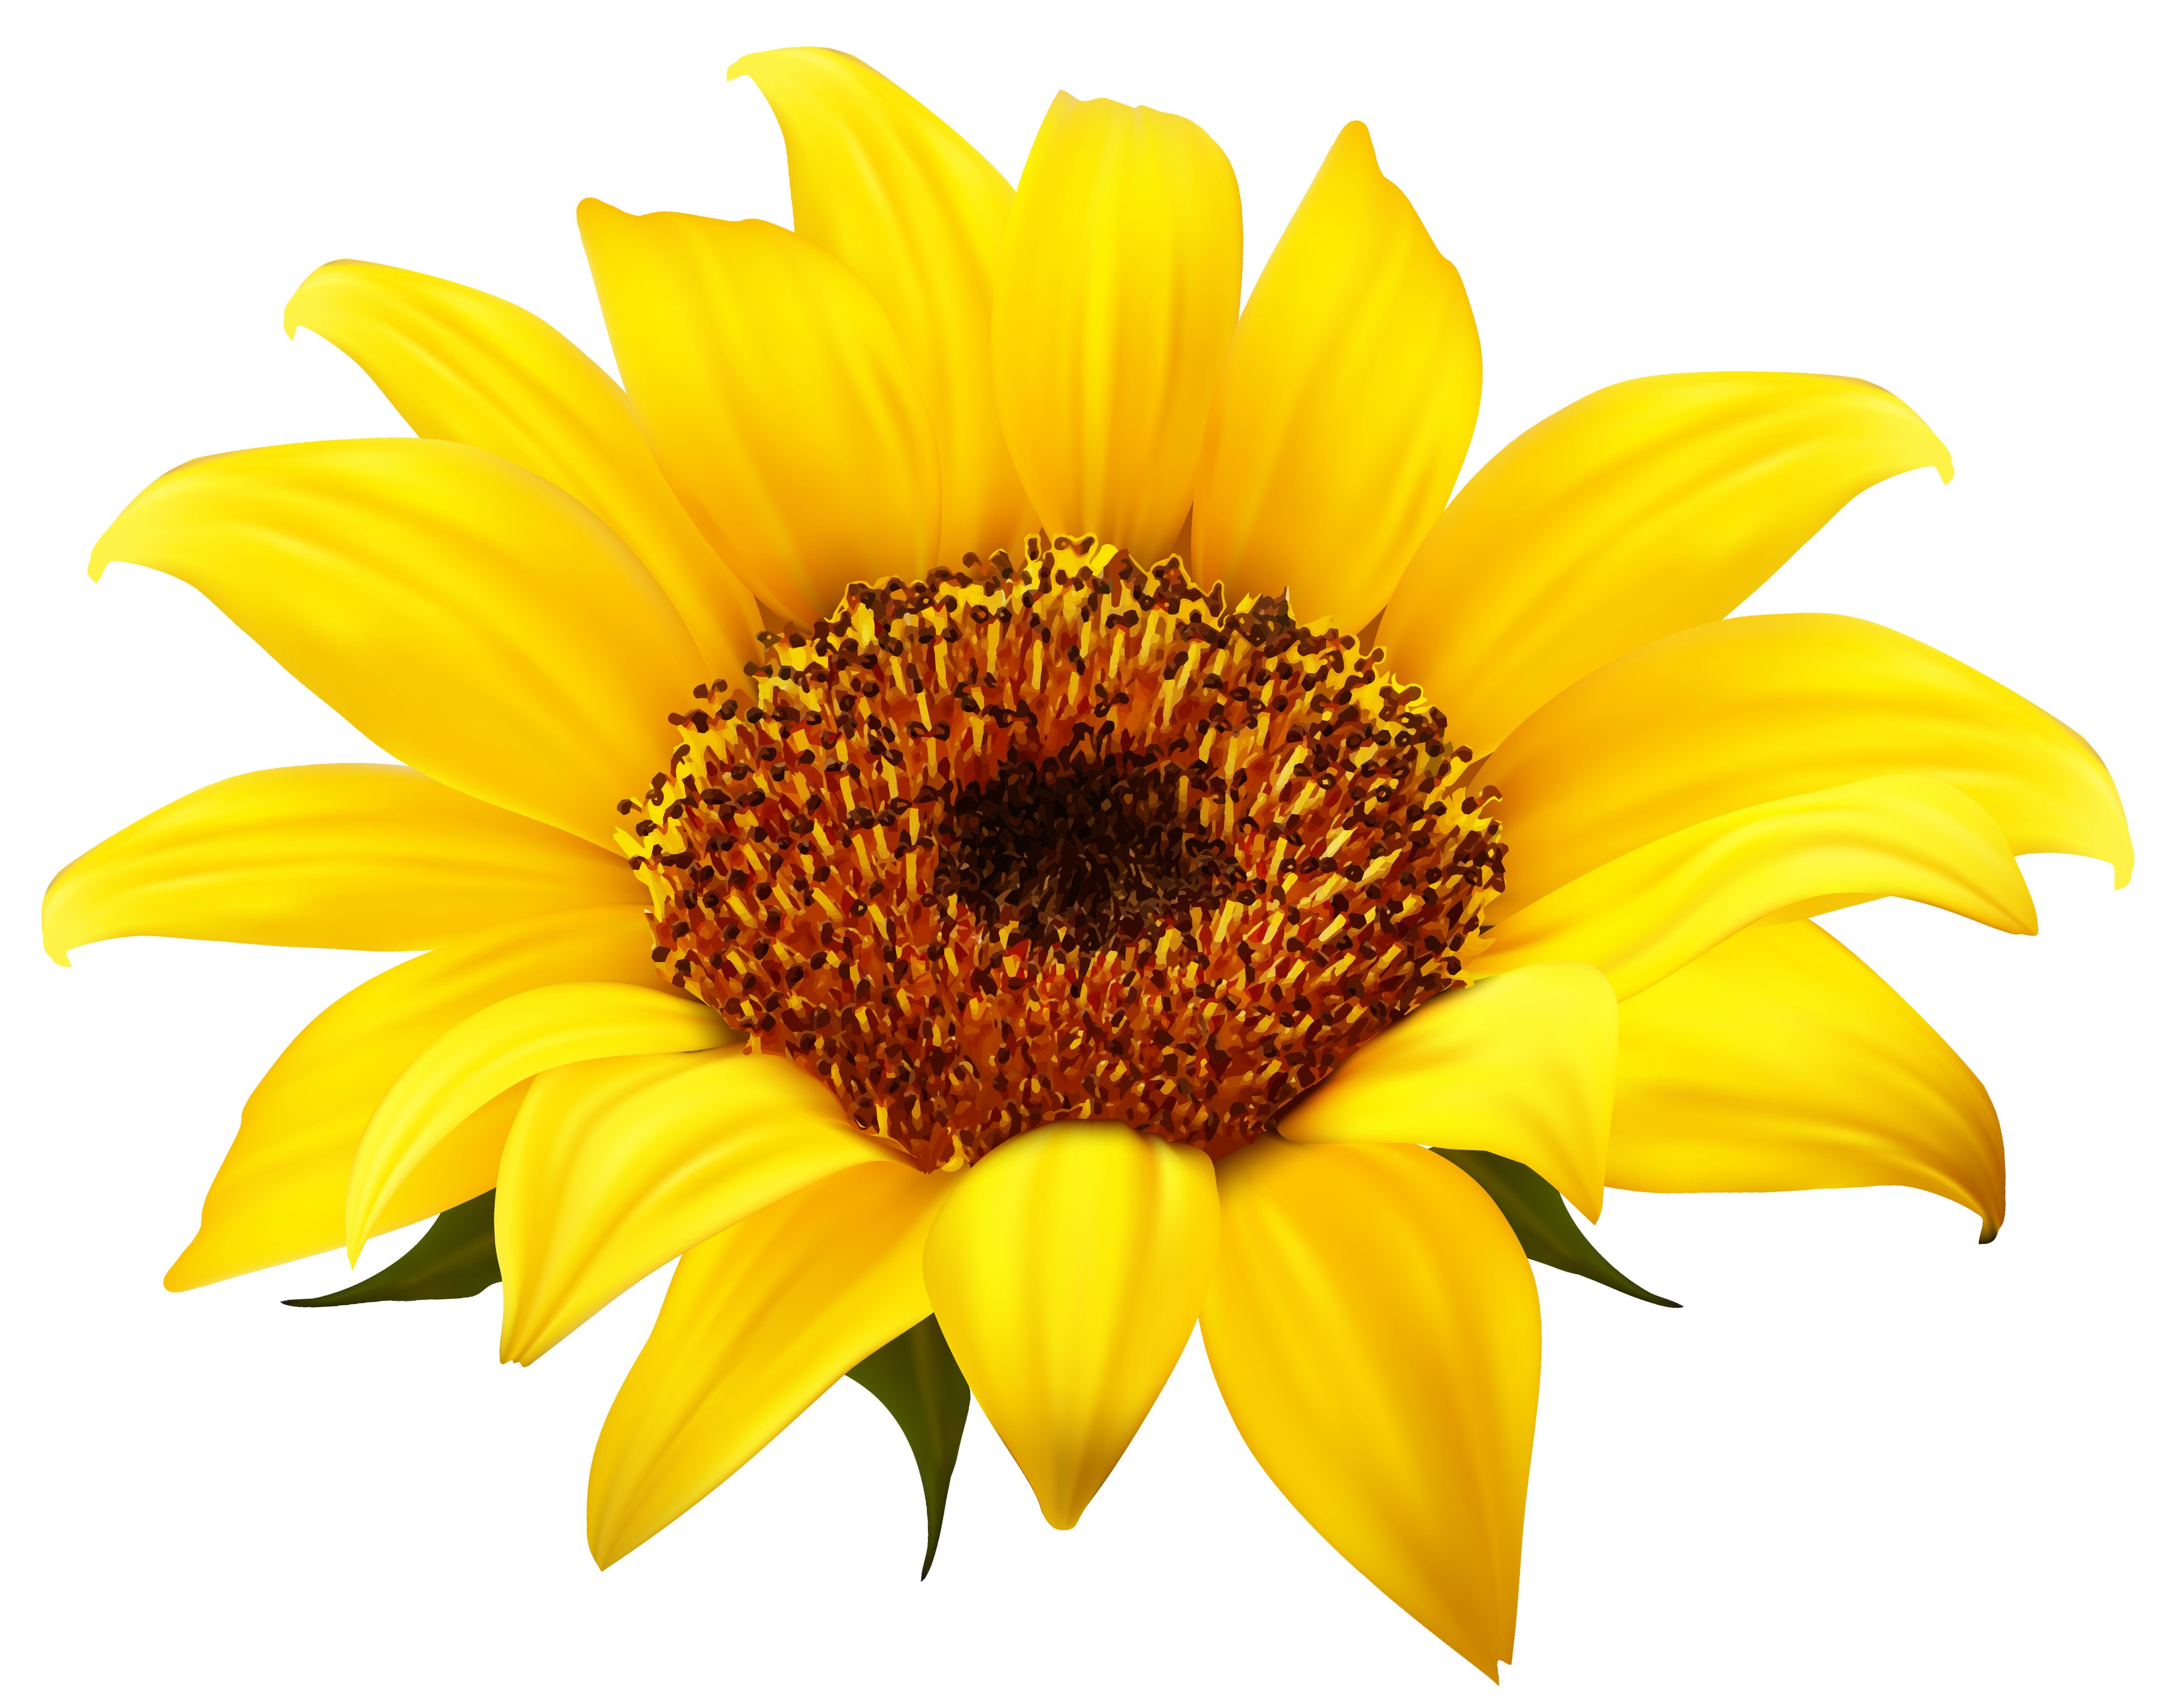 Sun flower png. Sunflower clipart image gallery